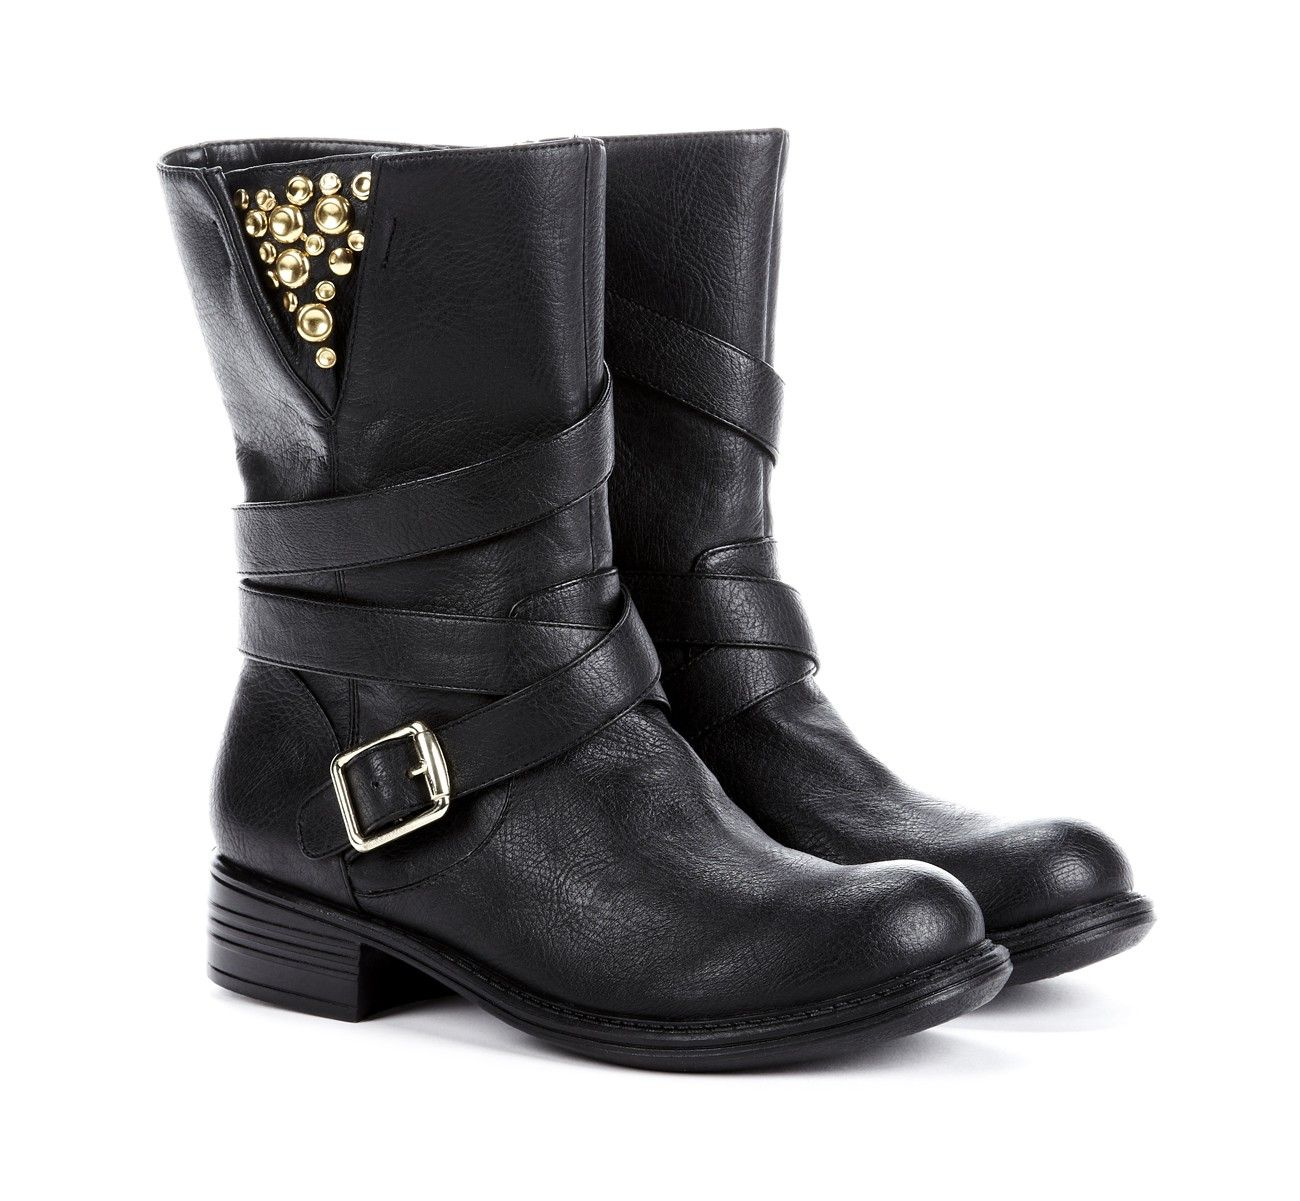 motorcycle boots - my Harley boots are the most comfortable boots ...